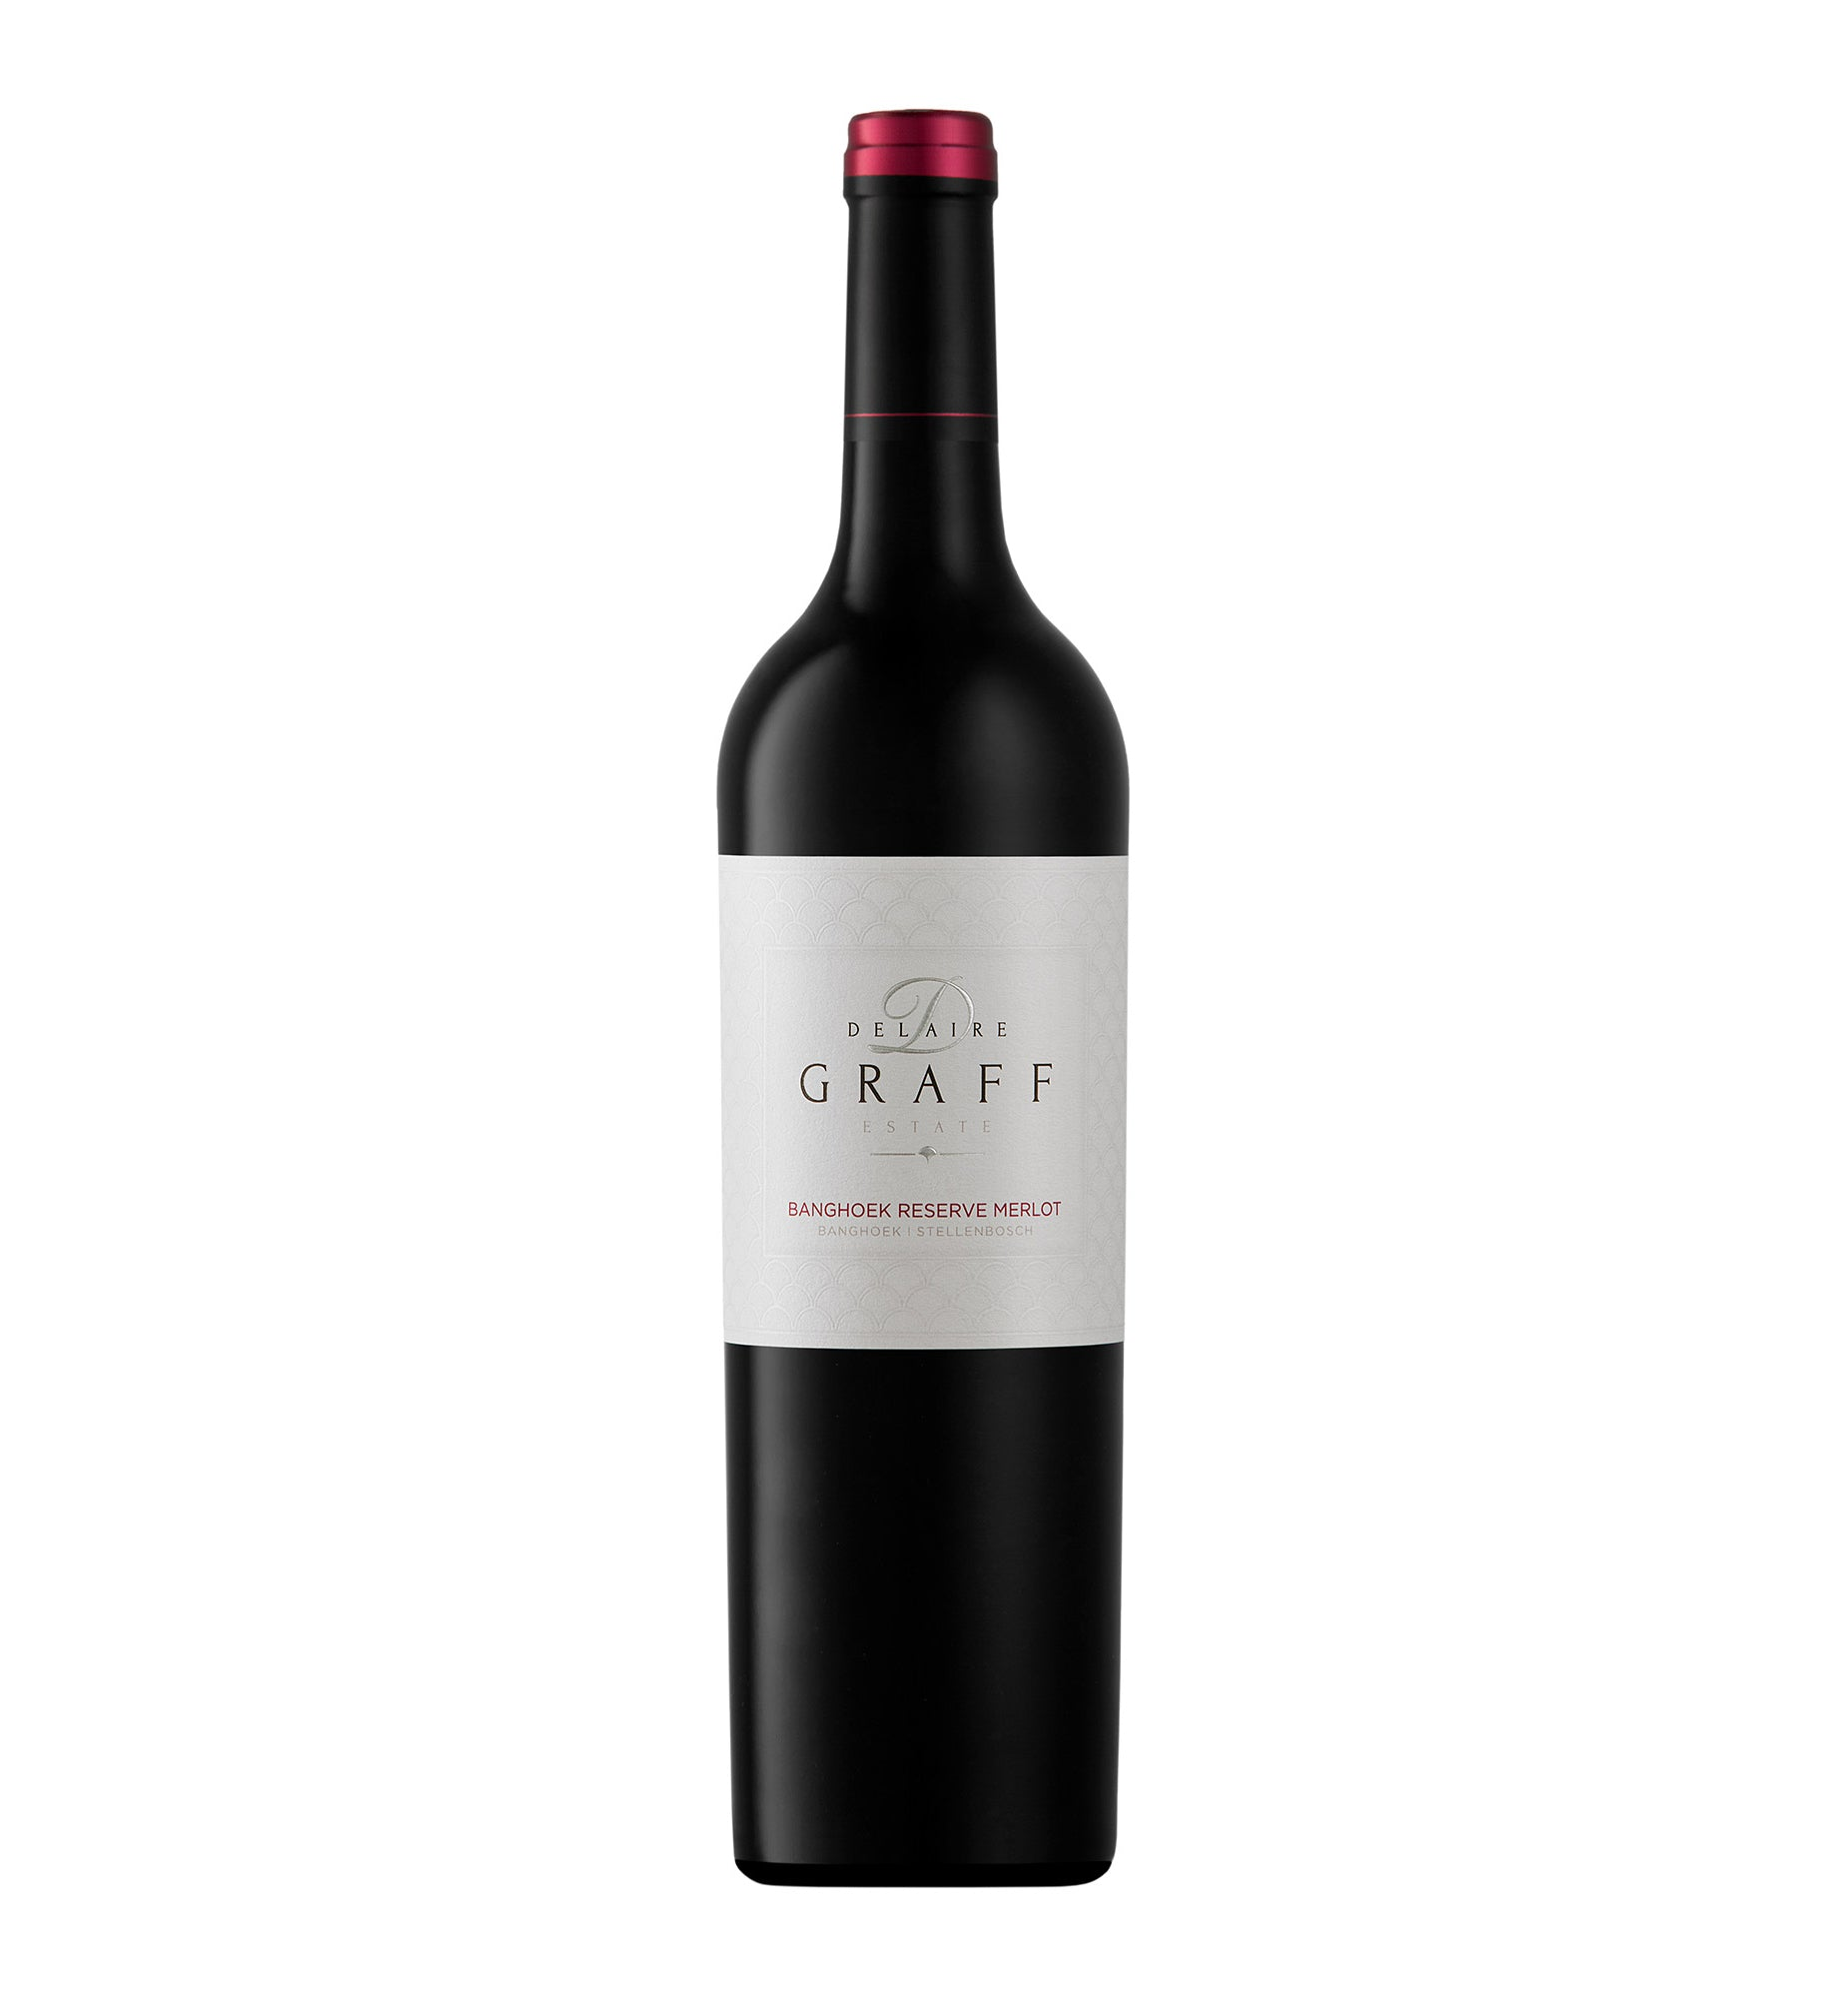 Buy banghoek reserve merlot red wine in South Africa from Delaire Graff Estate